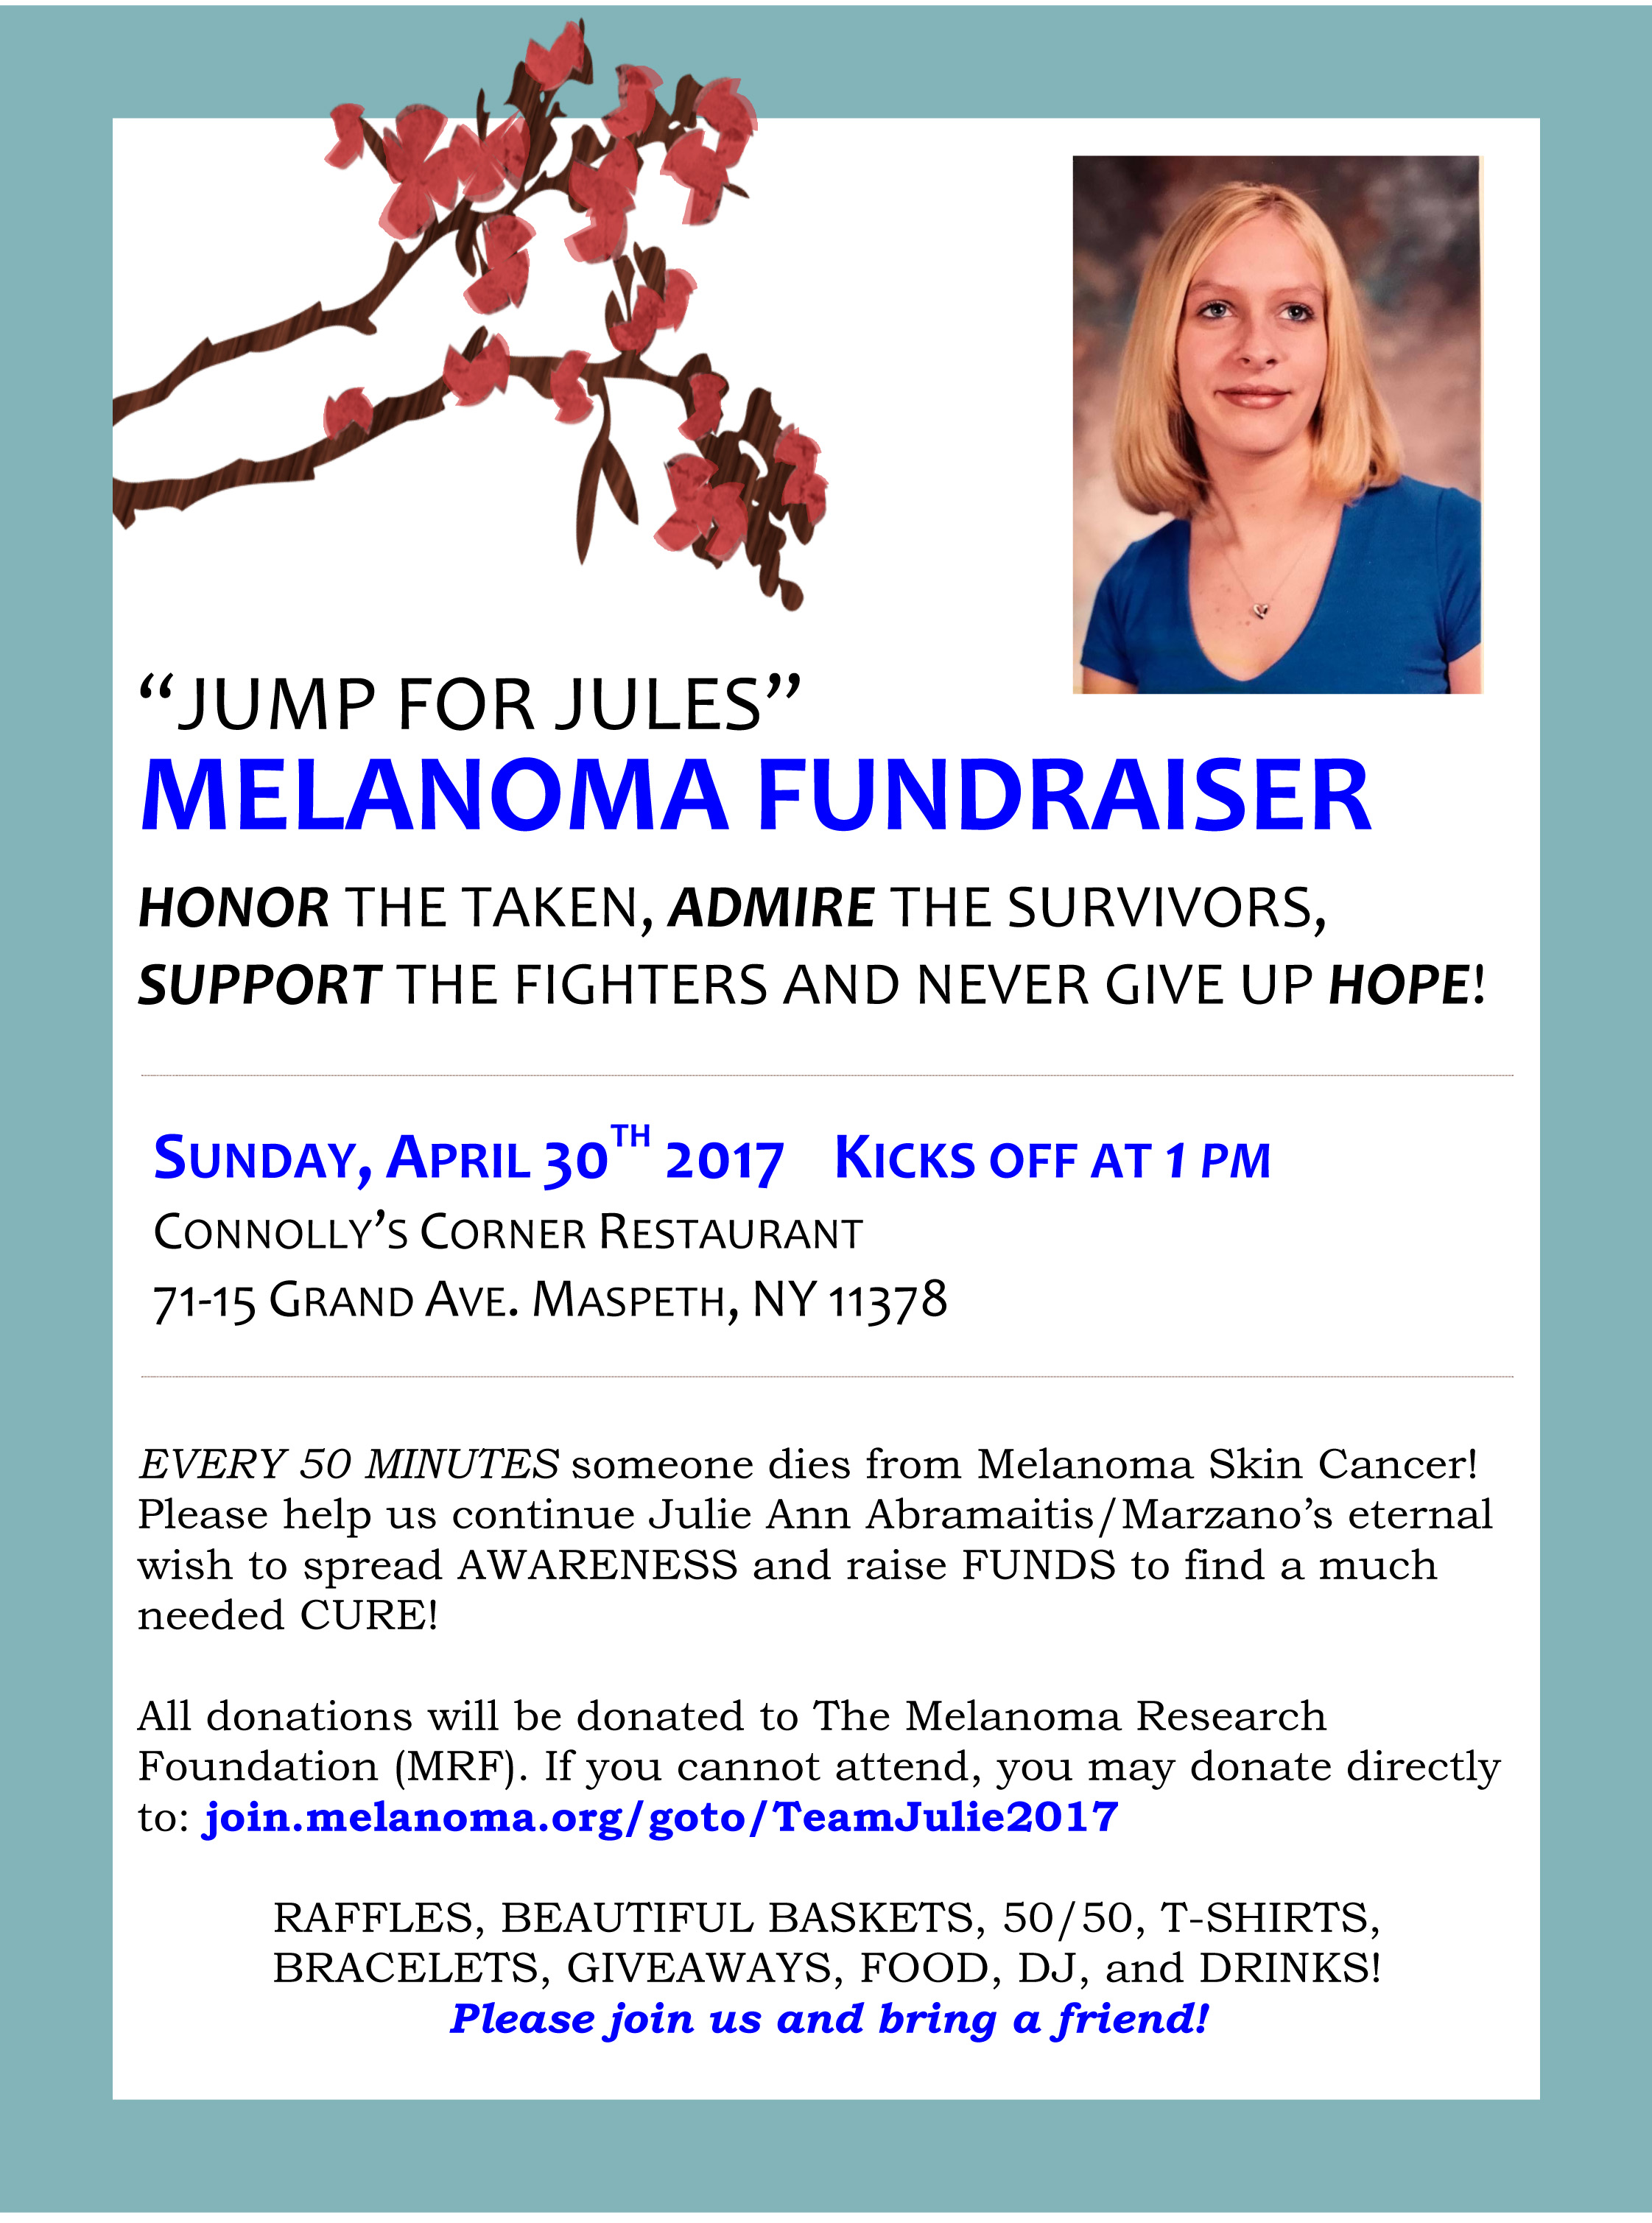 Microsoft Word - JUMP FOR jULES (1).docx